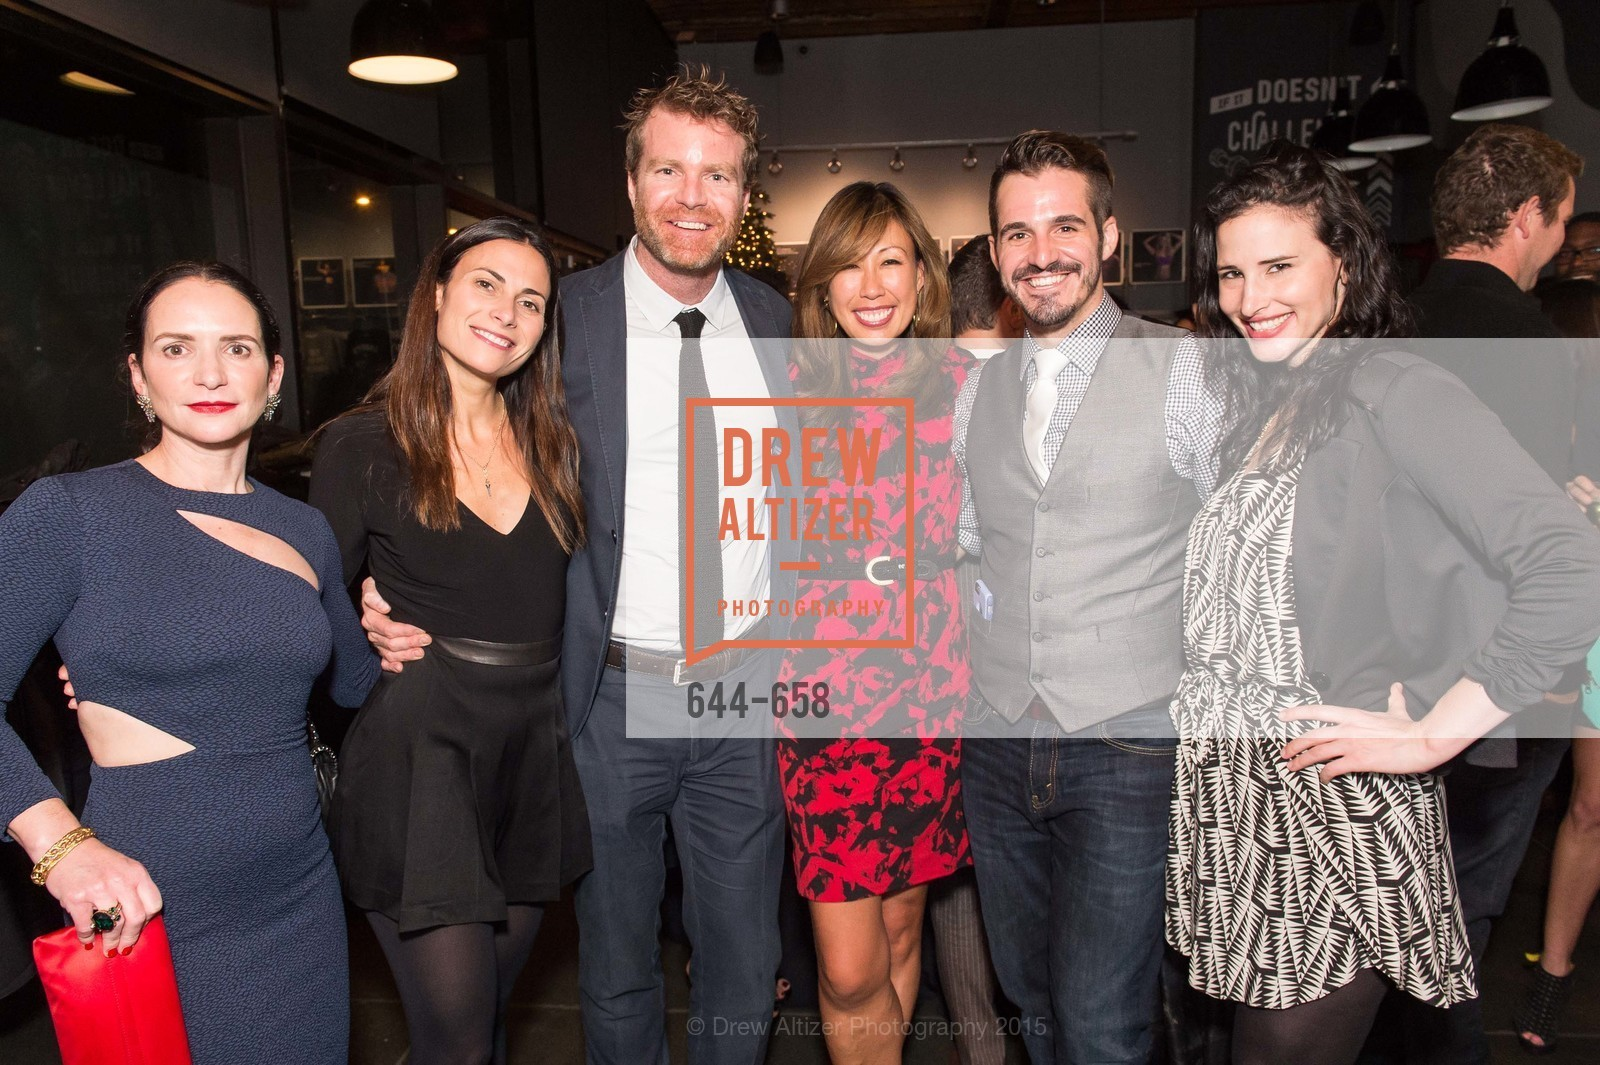 Courtney Dallaire, Kimberly Mulligan, Ian Shea, Joy Boatwright, Ryan Mackley, Michaela Burns, Barry's Marina Opening, Barry's. 2246 Lombard Street, December 17th, 2015,Drew Altizer, Drew Altizer Photography, full-service agency, private events, San Francisco photographer, photographer california